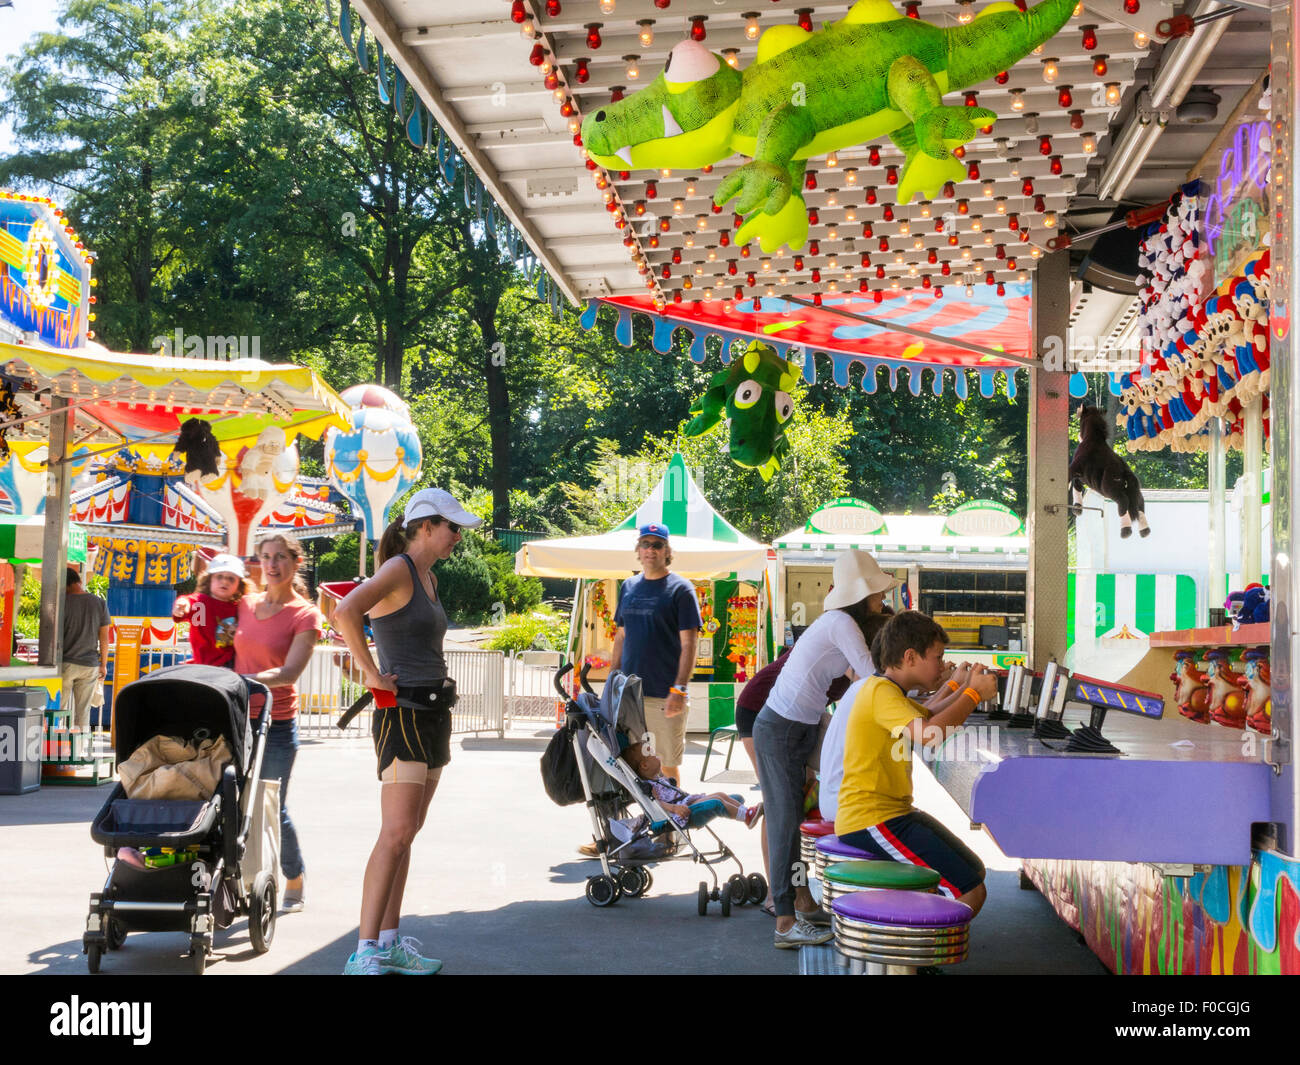 Victorian Gardens Carnival In Central Park Nyc Stock Photo Royalty Free Image 86328328 Alamy